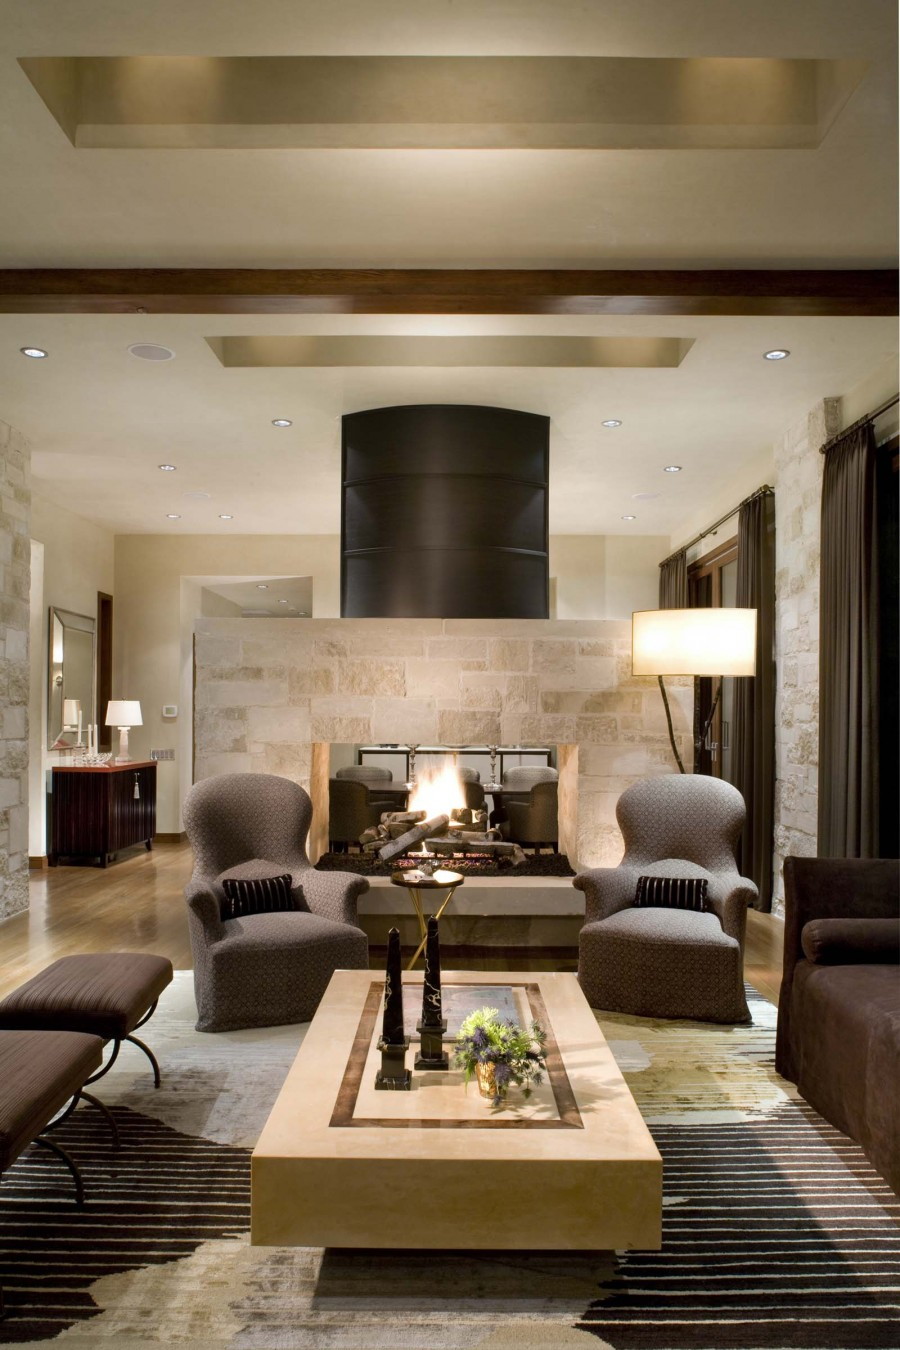 16 fabulous earth tones living room designs decoholic for Living room interior decor